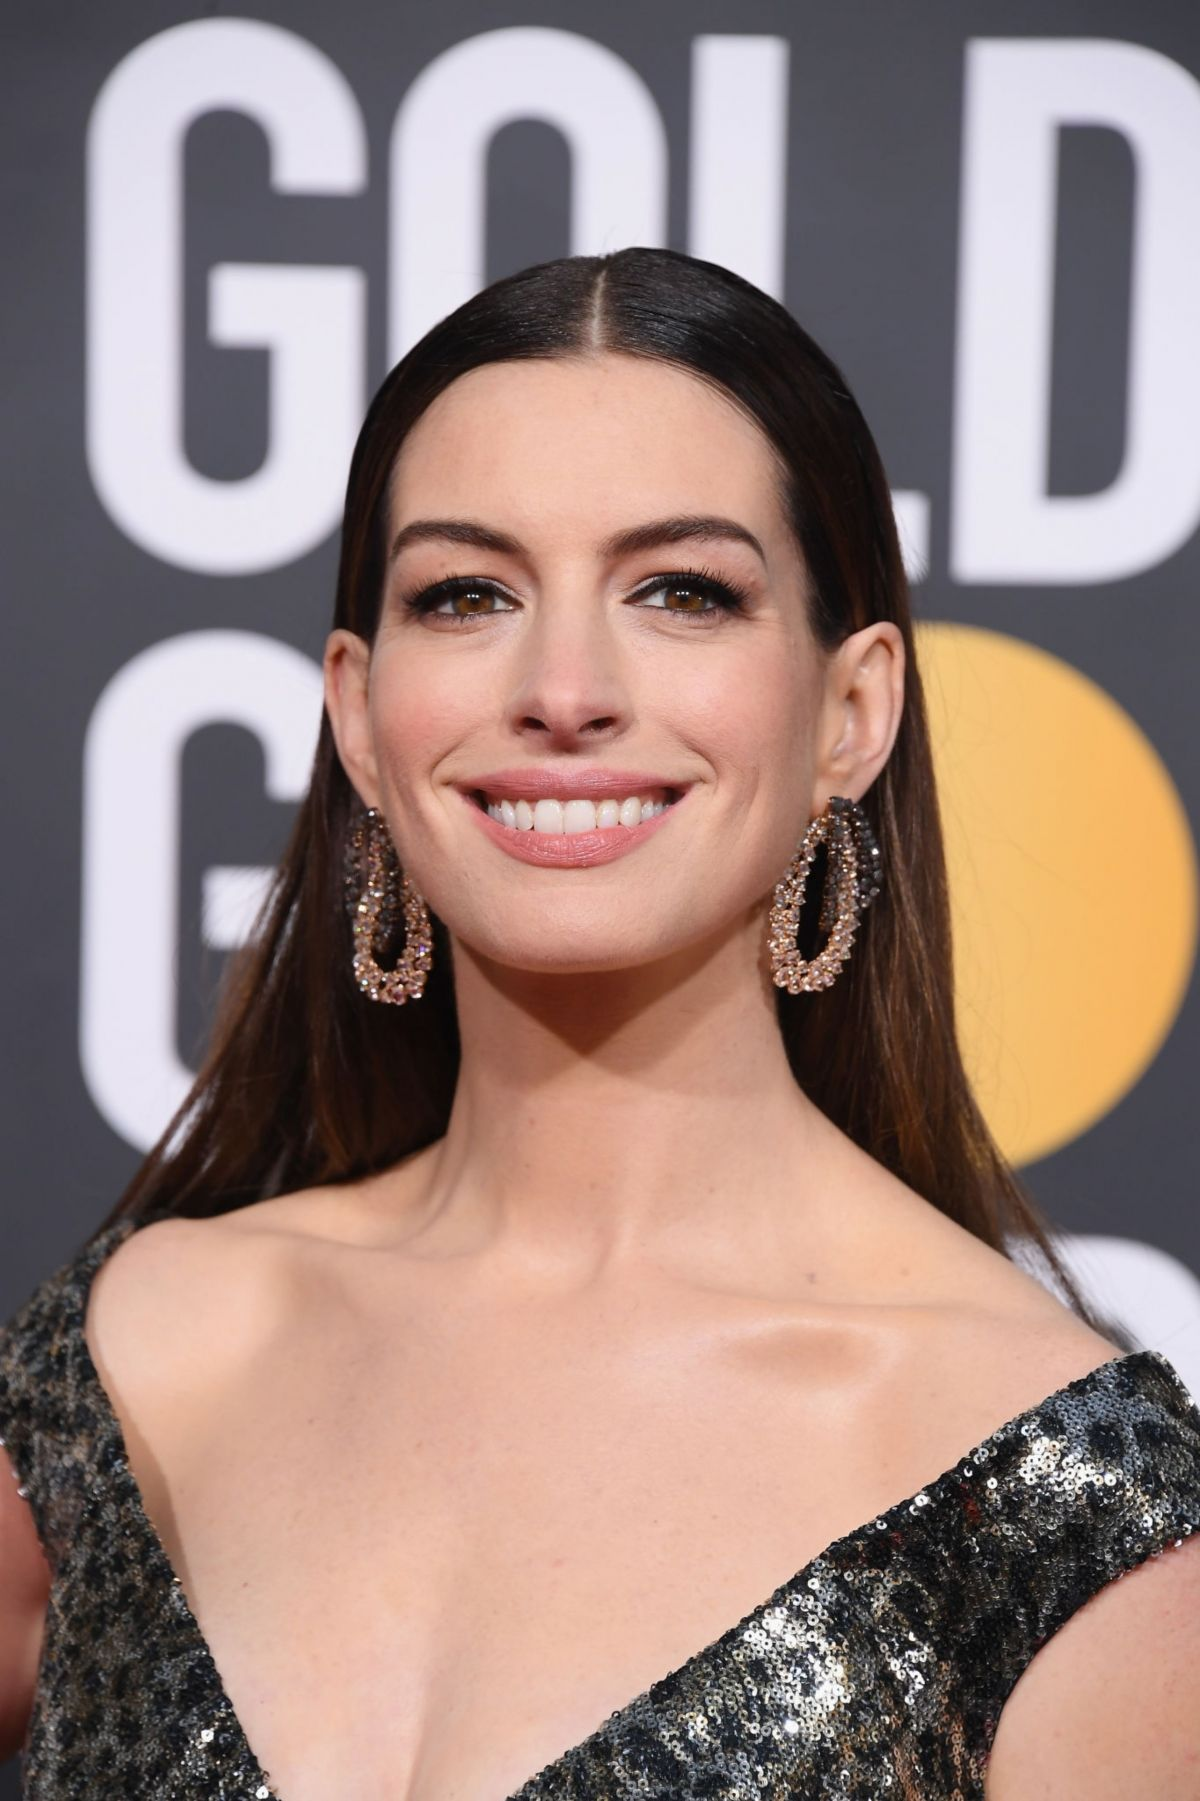 Hot 2019 Anne Hathaway naked photo 2017